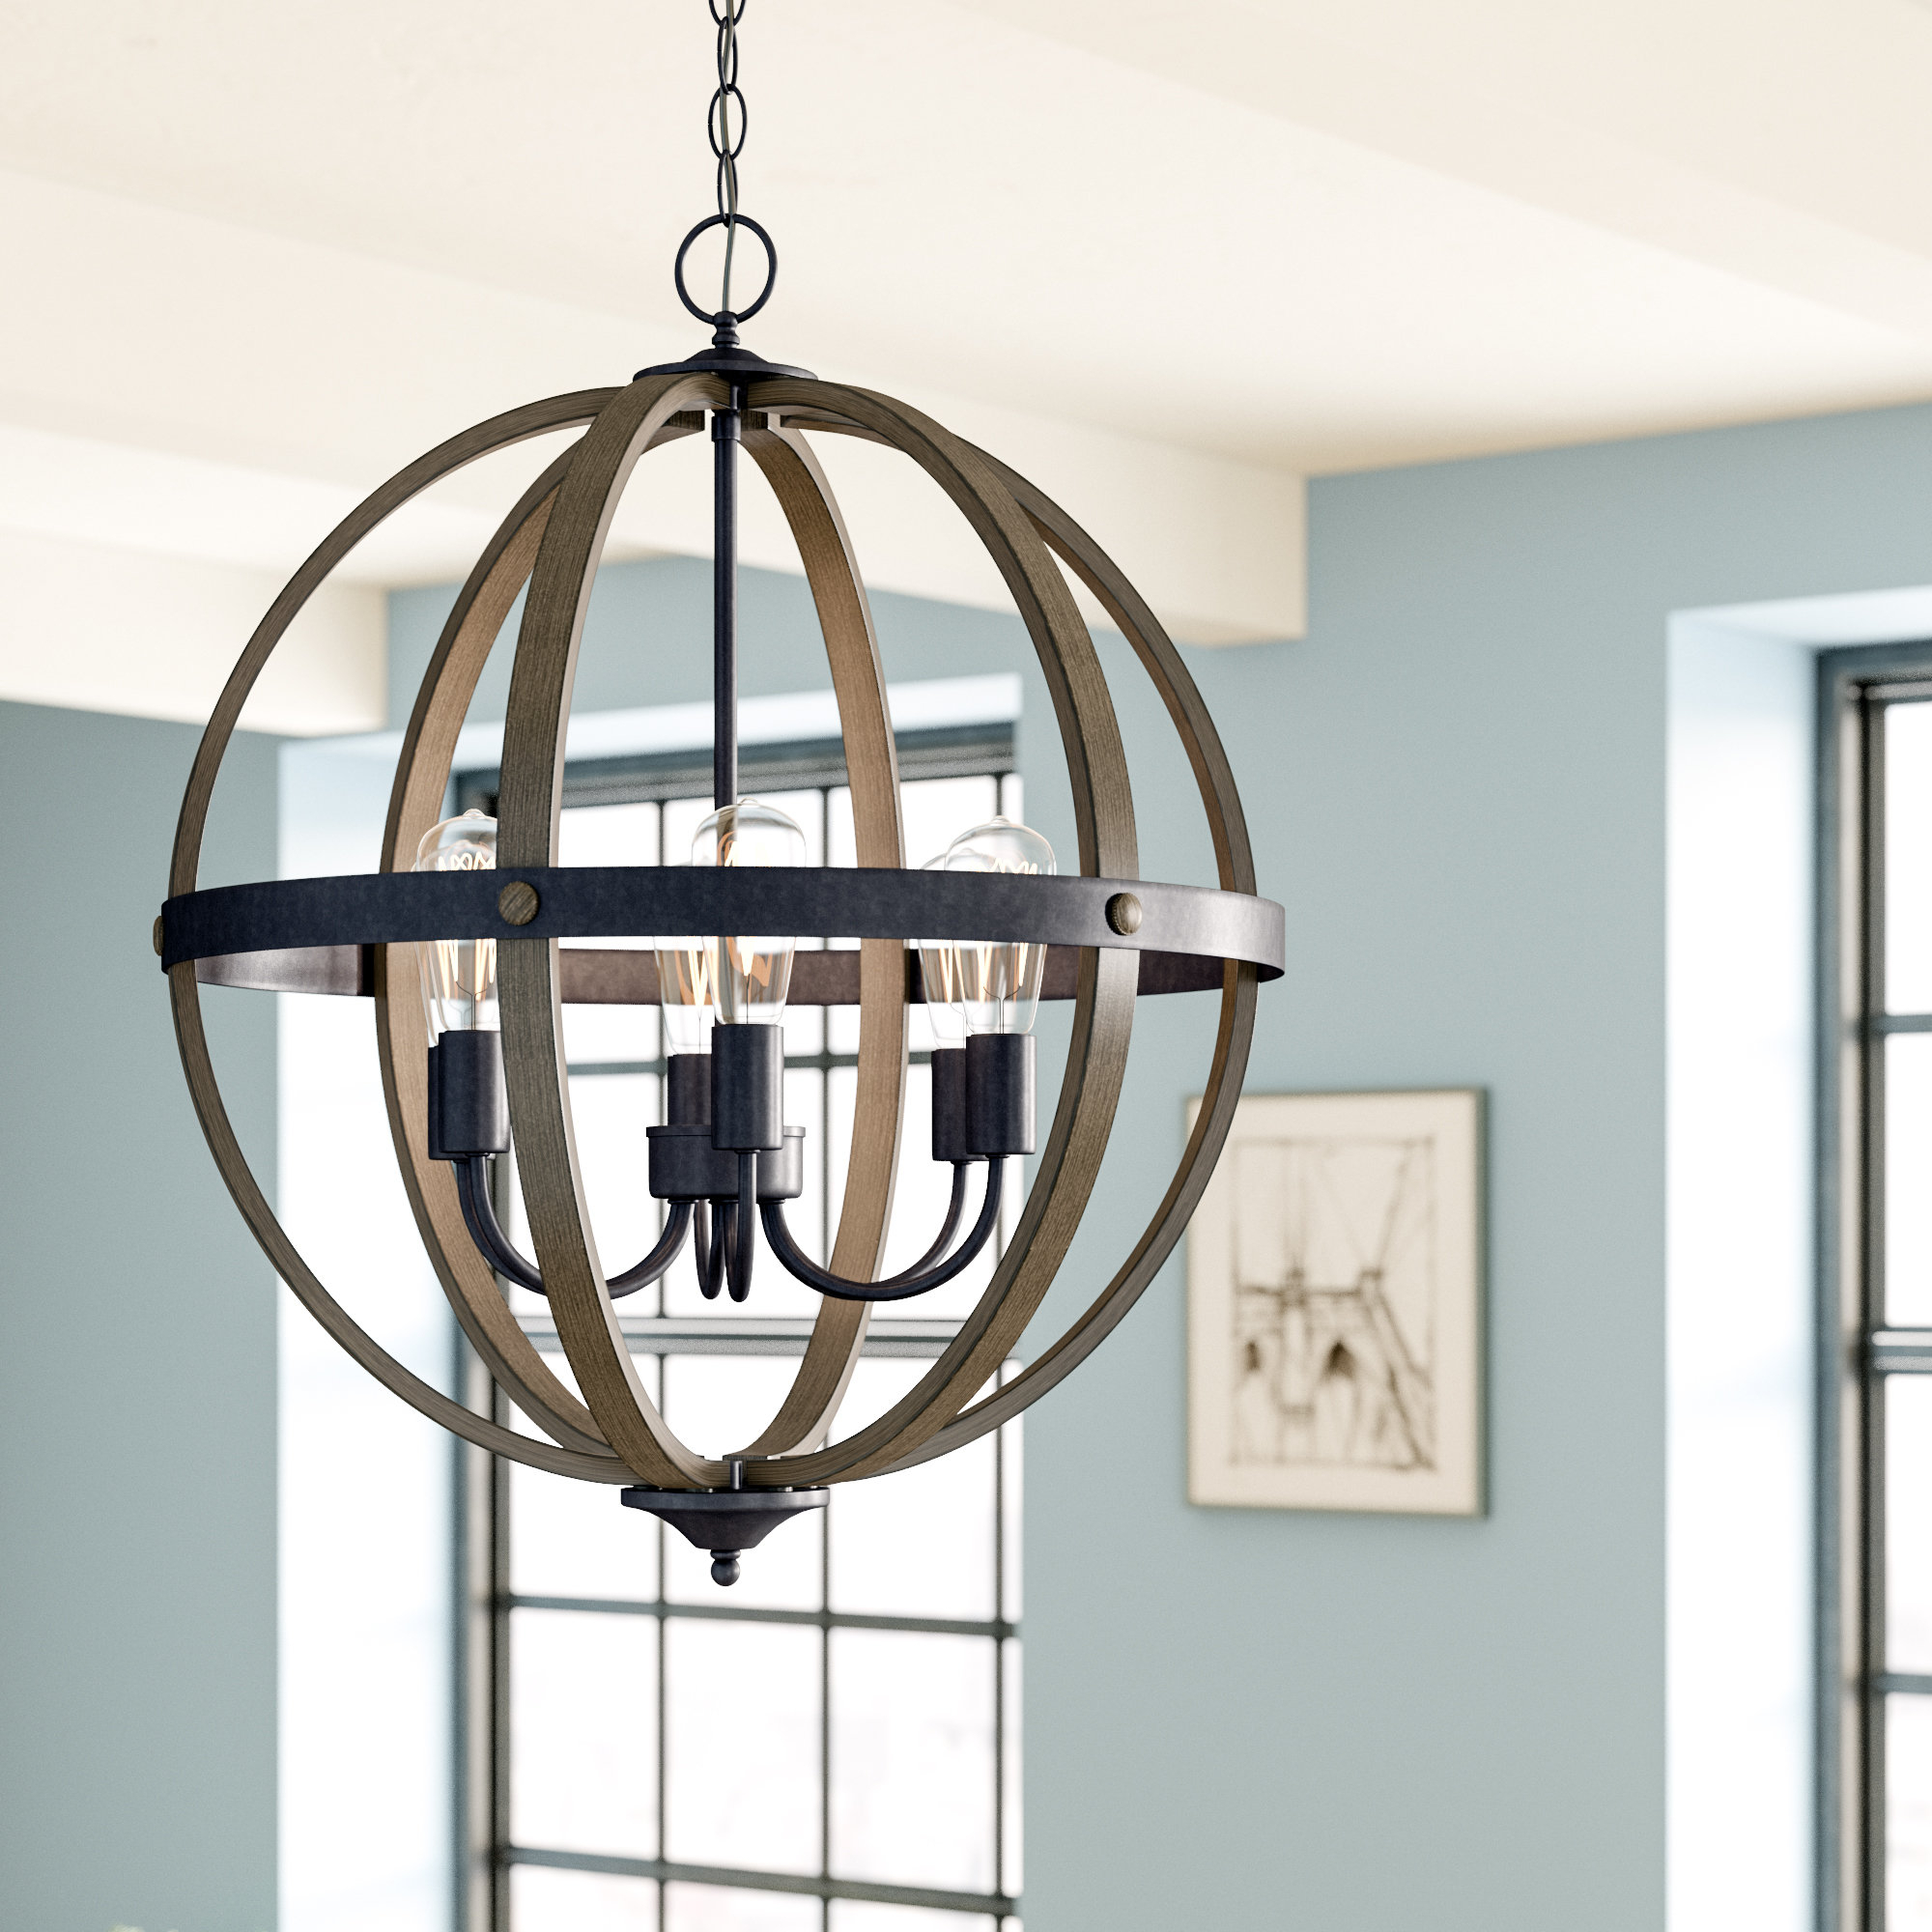 Kathrina 6 Light Globe Chandelier Pertaining To Fashionable Alden 6 Light Globe Chandeliers (View 11 of 25)